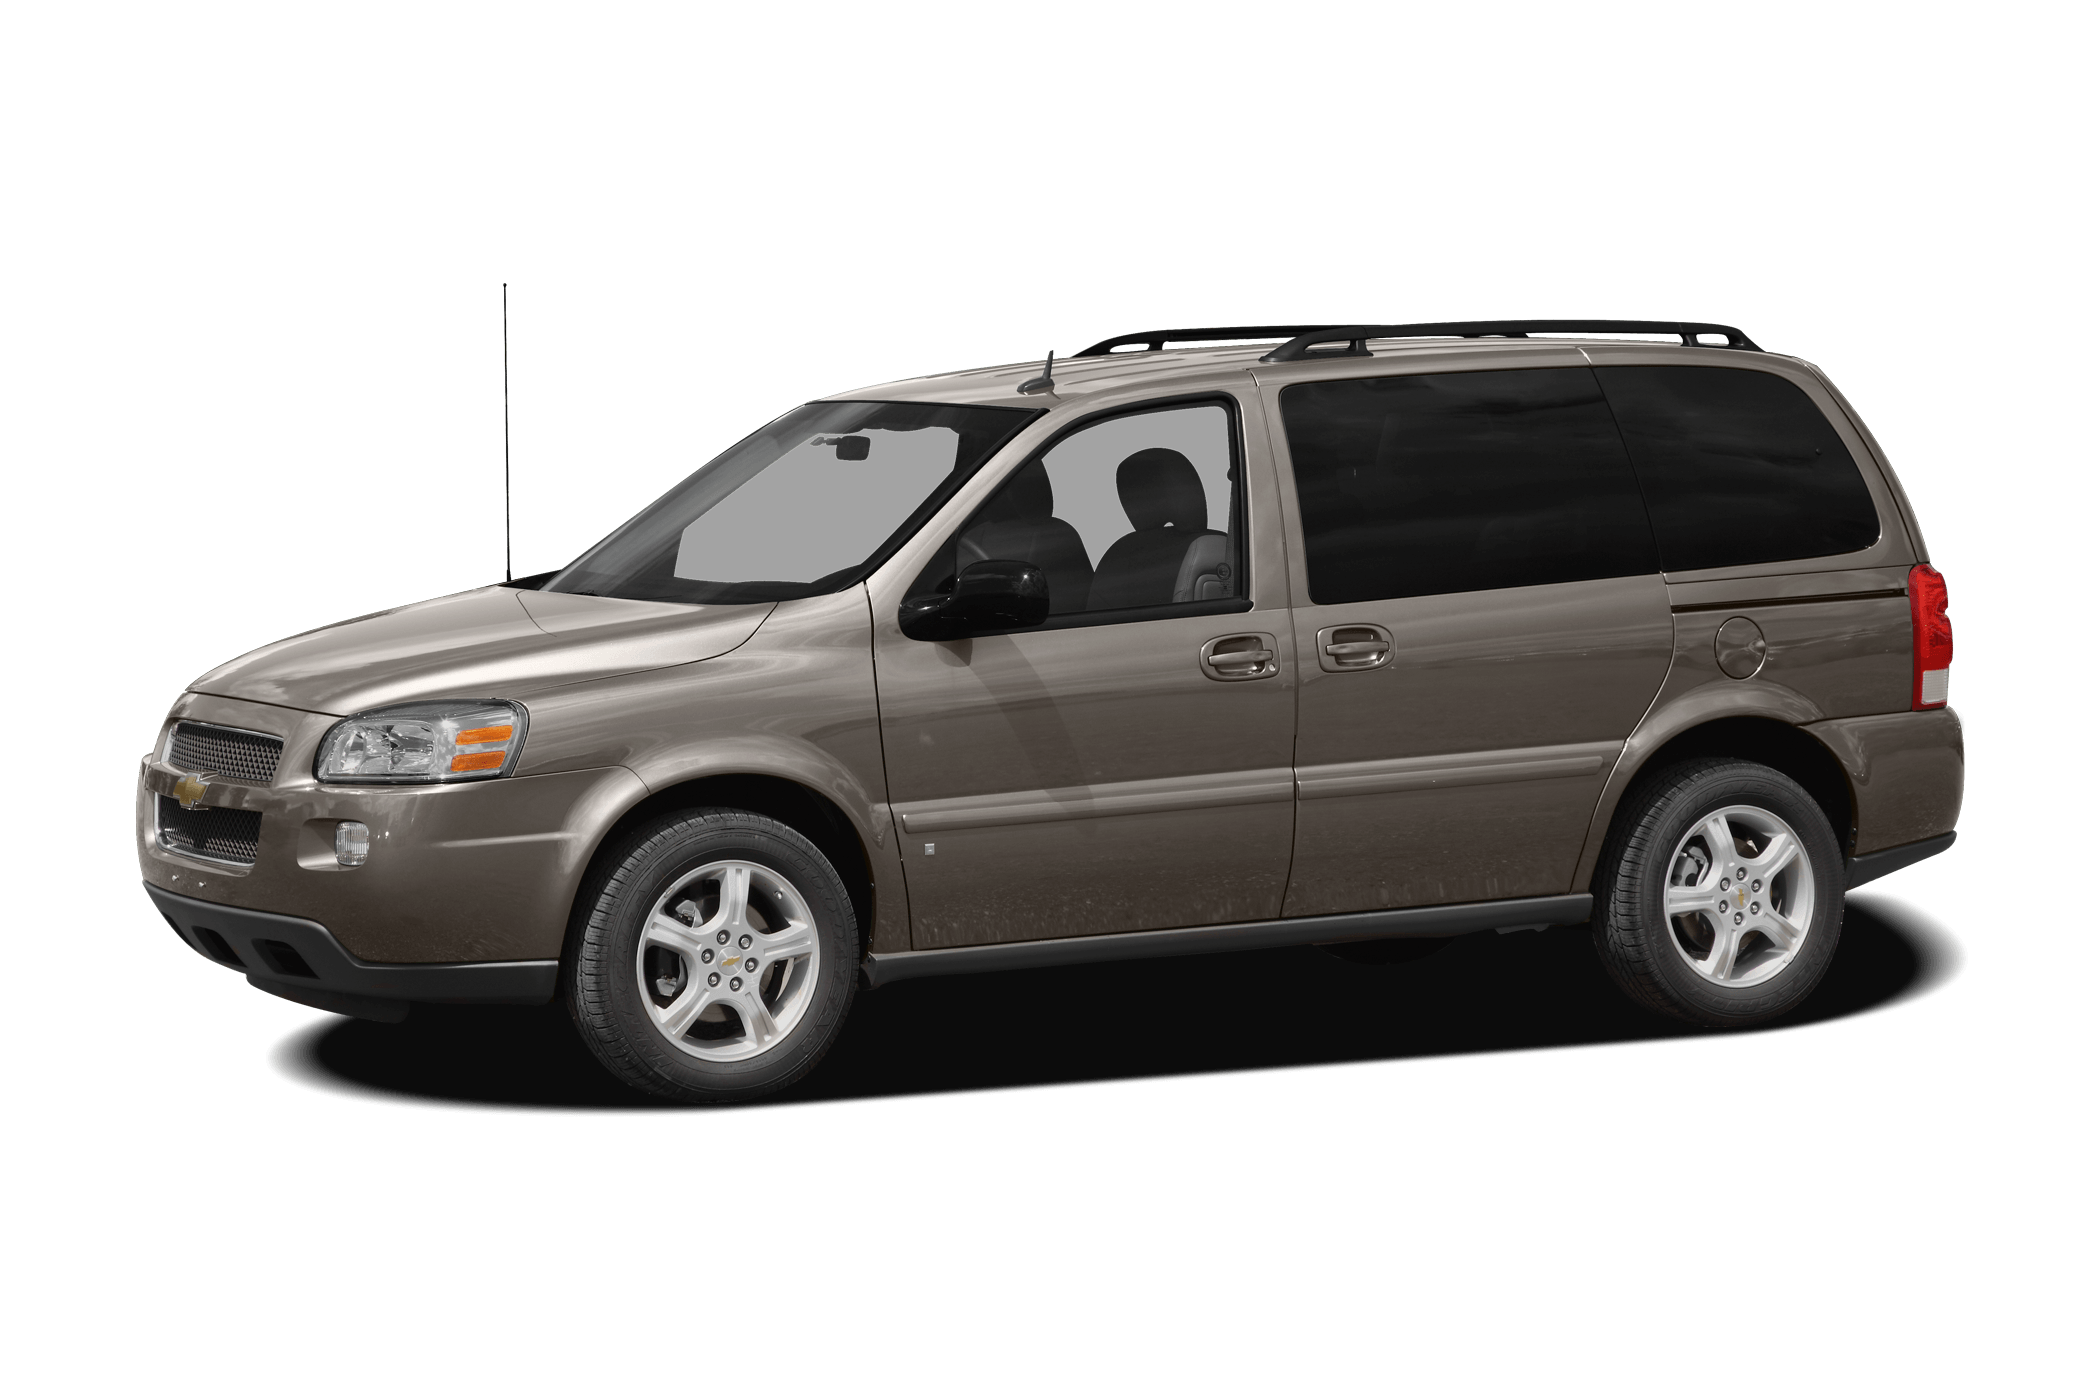 Chevy Uplander for hire at Just In Time Transportation Services